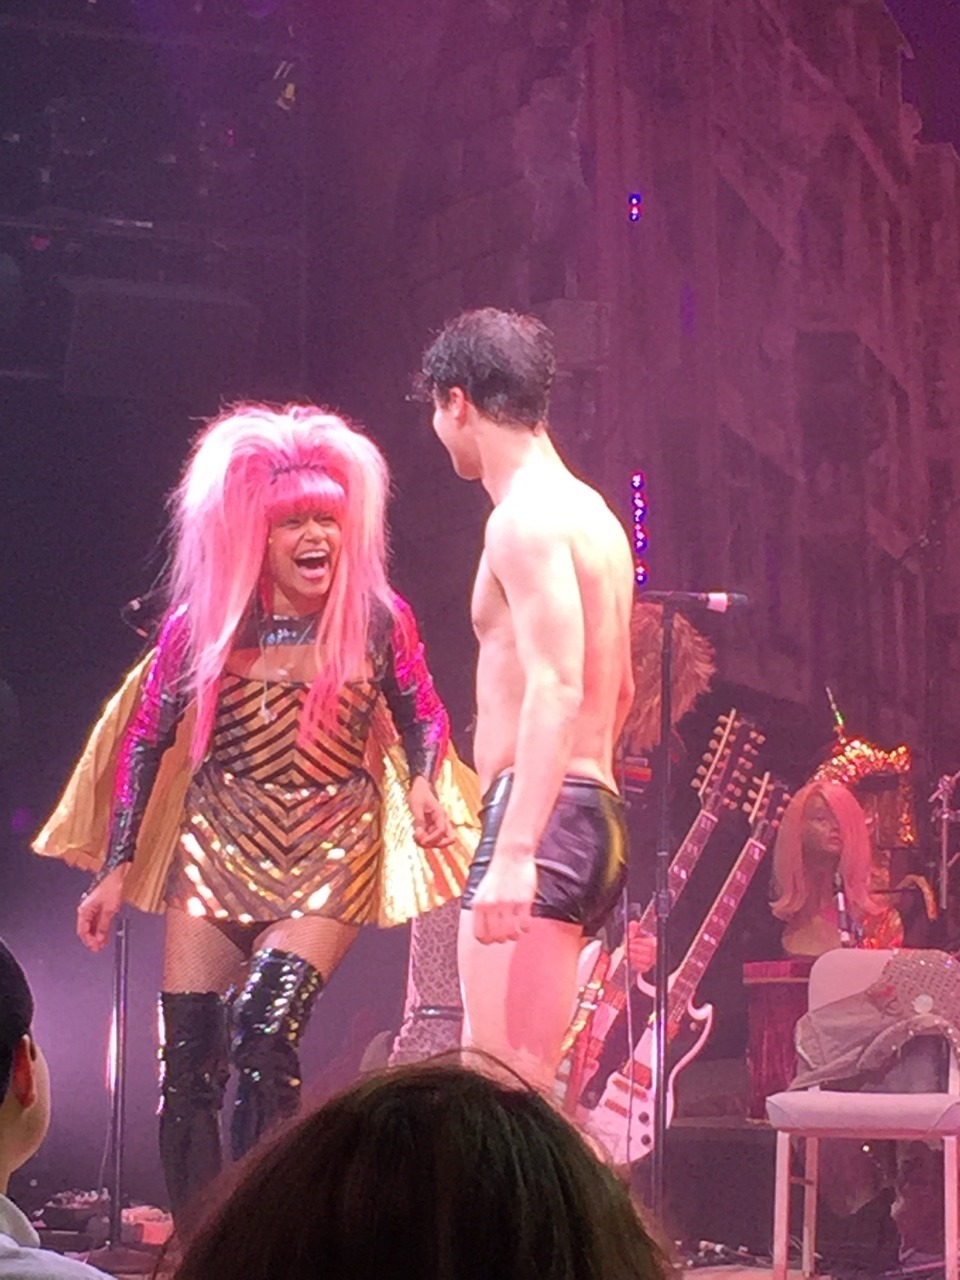 hedwig - Pics and gifs of Darren in Hedwig and the Angry Inch on Broadway. Tumblr_nq6b14Y2Qk1qdtnwjo10_1280